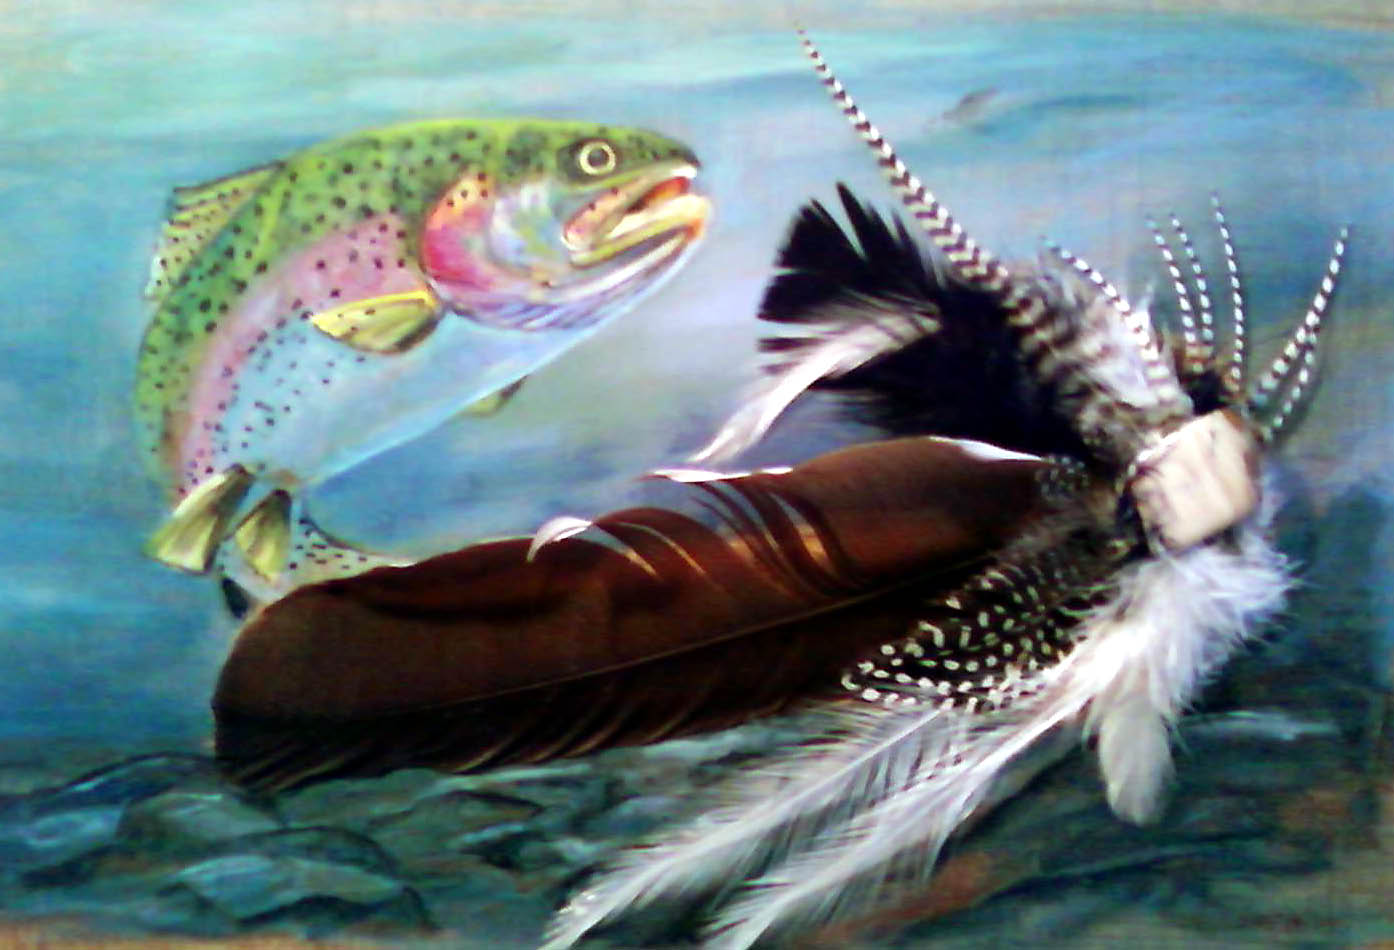 Acrylic/Feathers - Trout